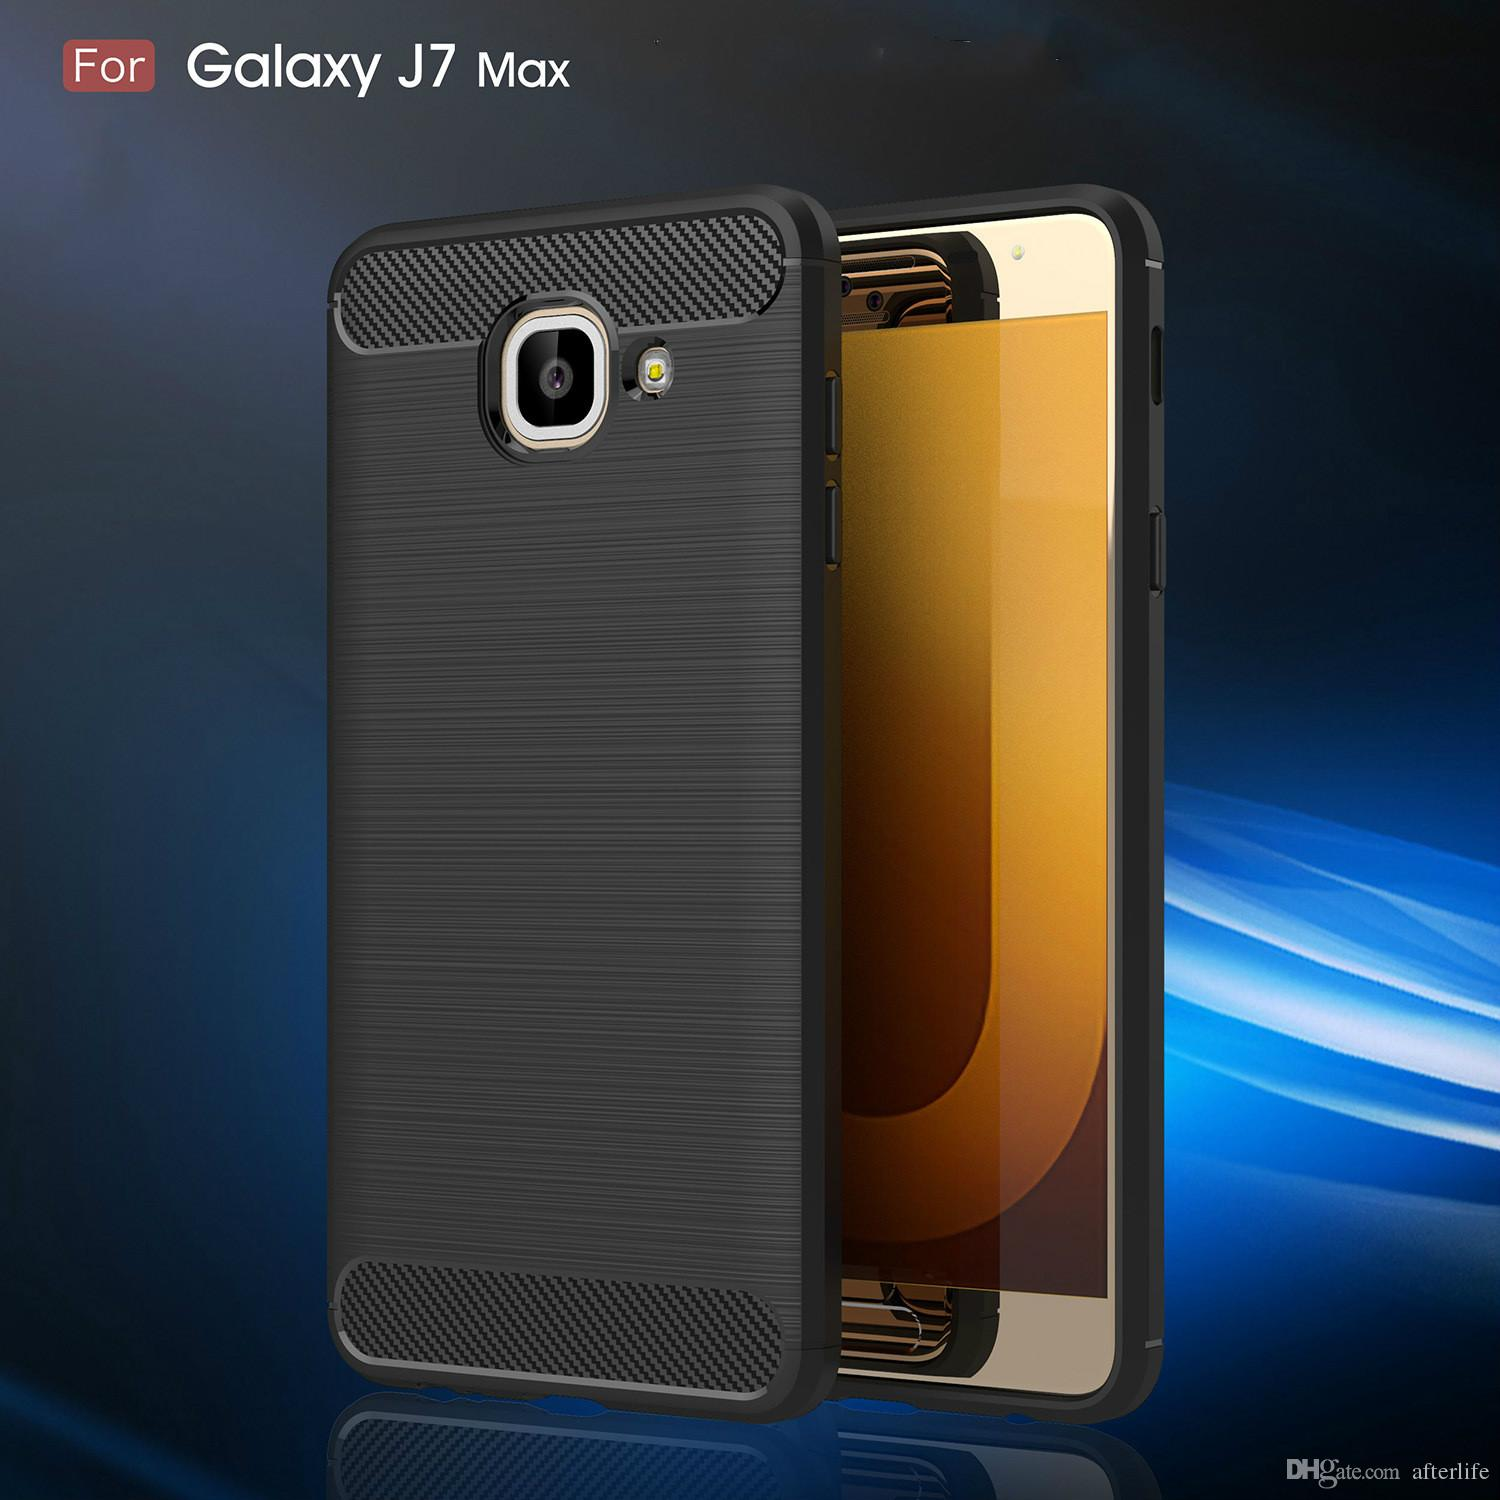 separation shoes a6d39 2f8f6 Fashion Luxury Phone case for Samsung J7 Max Case Silicon TPU Coque Hard  soft tpu Anti-knock Back cover for Samsung Galaxy J7 Max